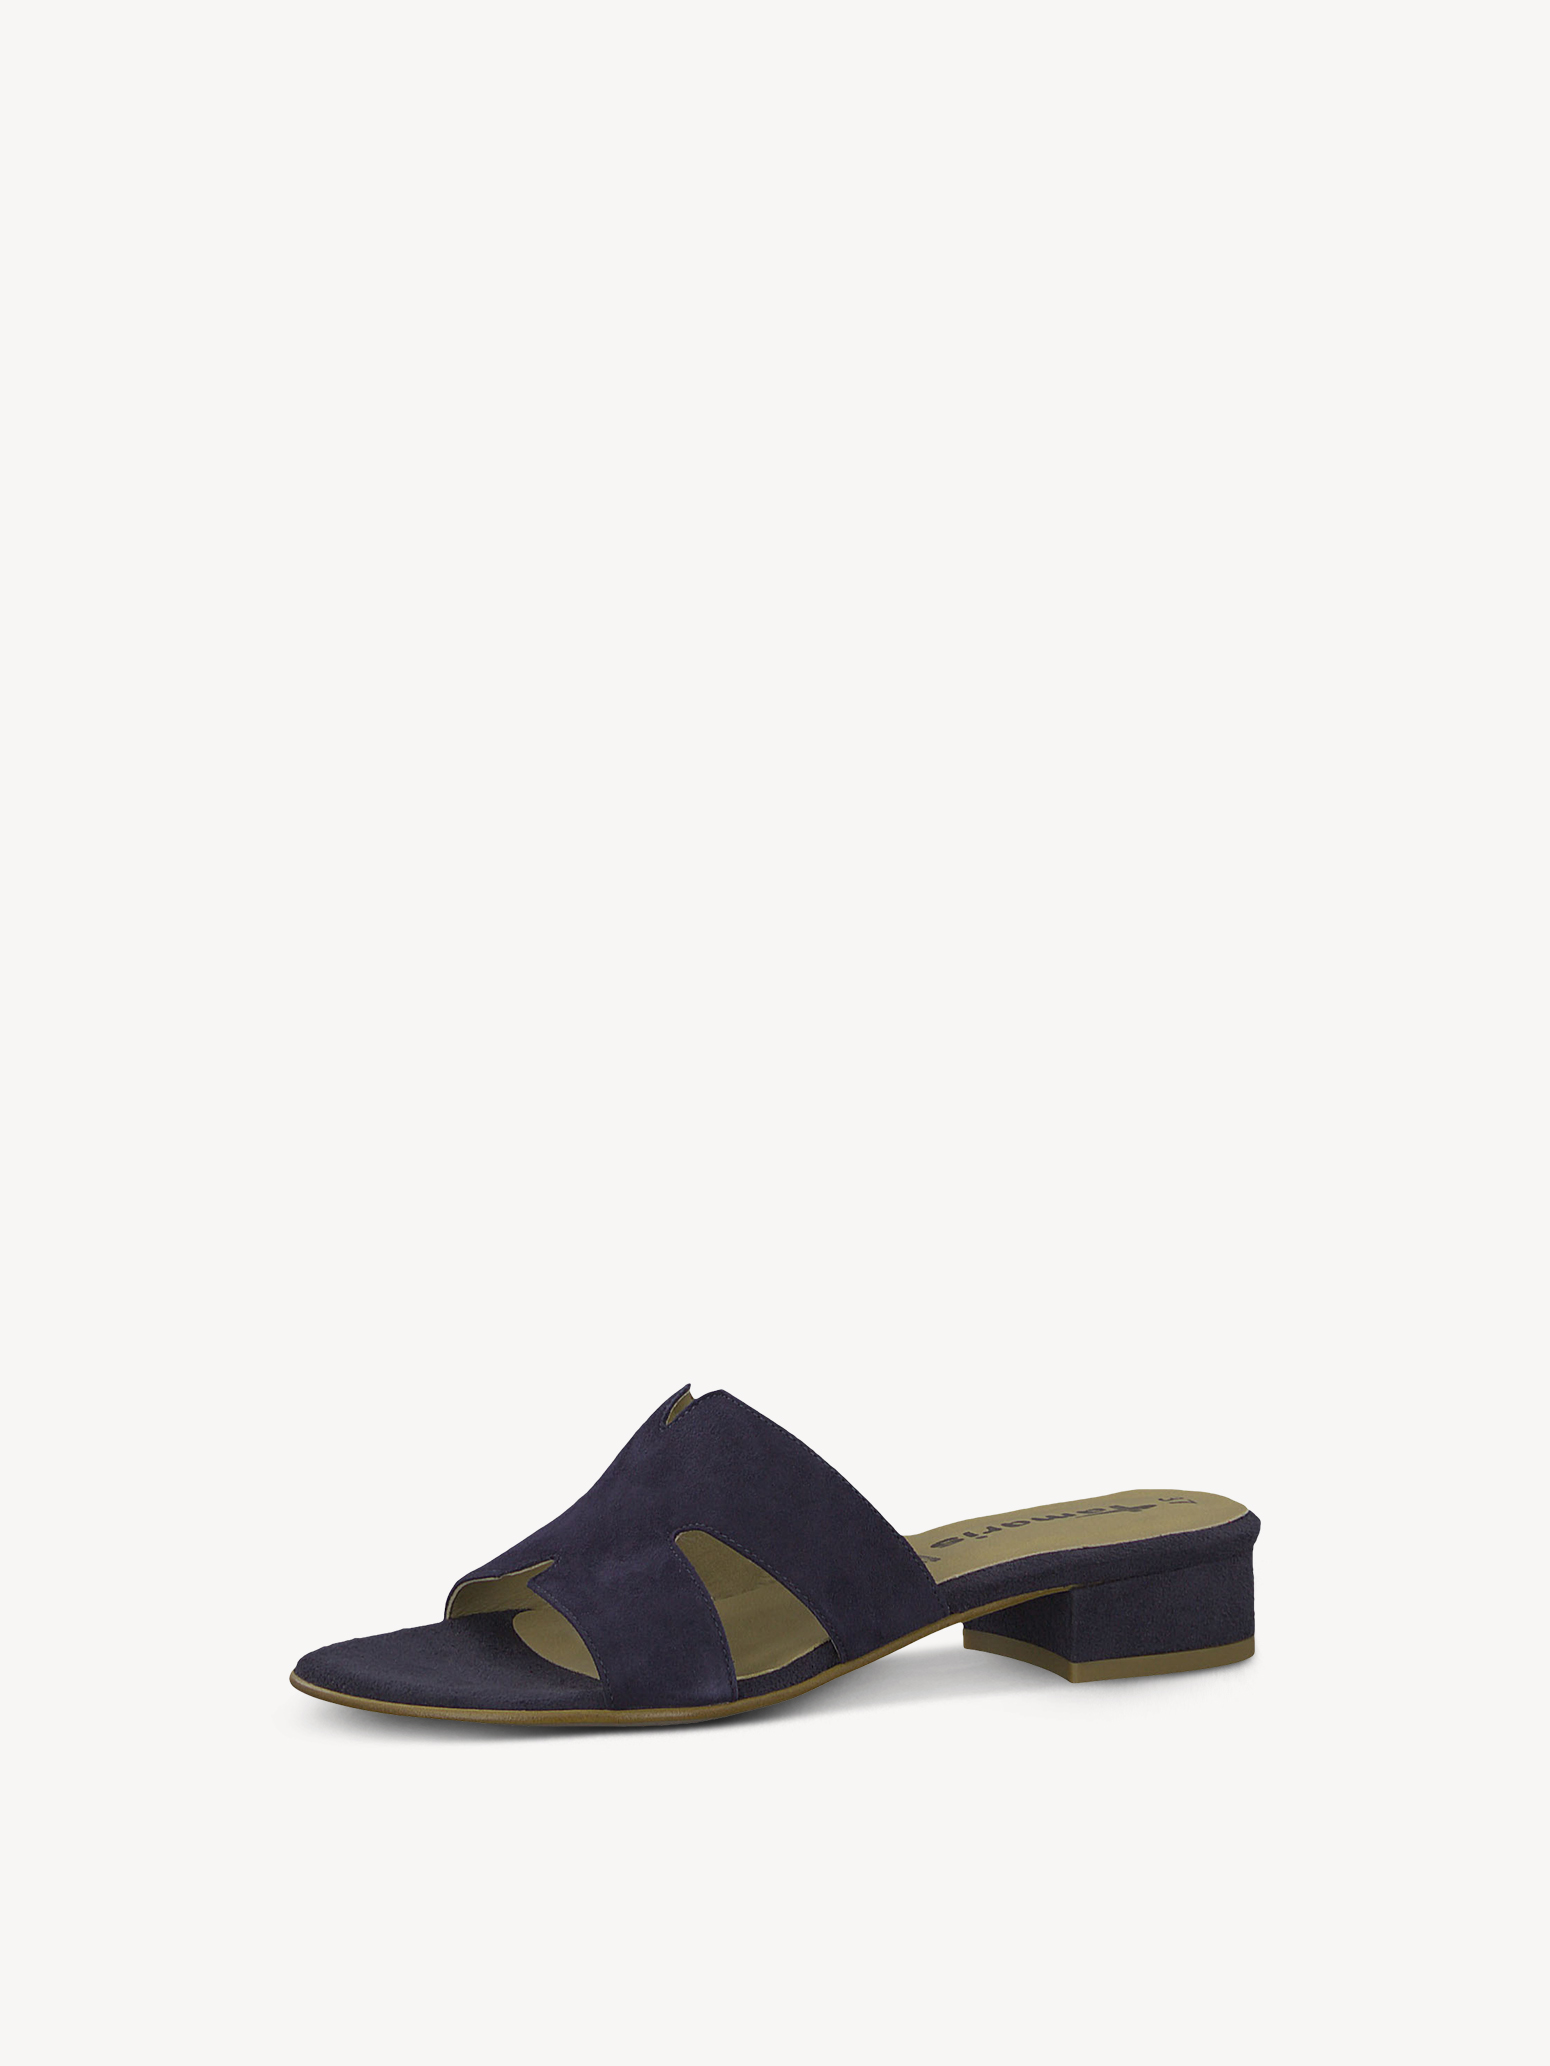 Leather Mule - blue, NAVY, hi-res